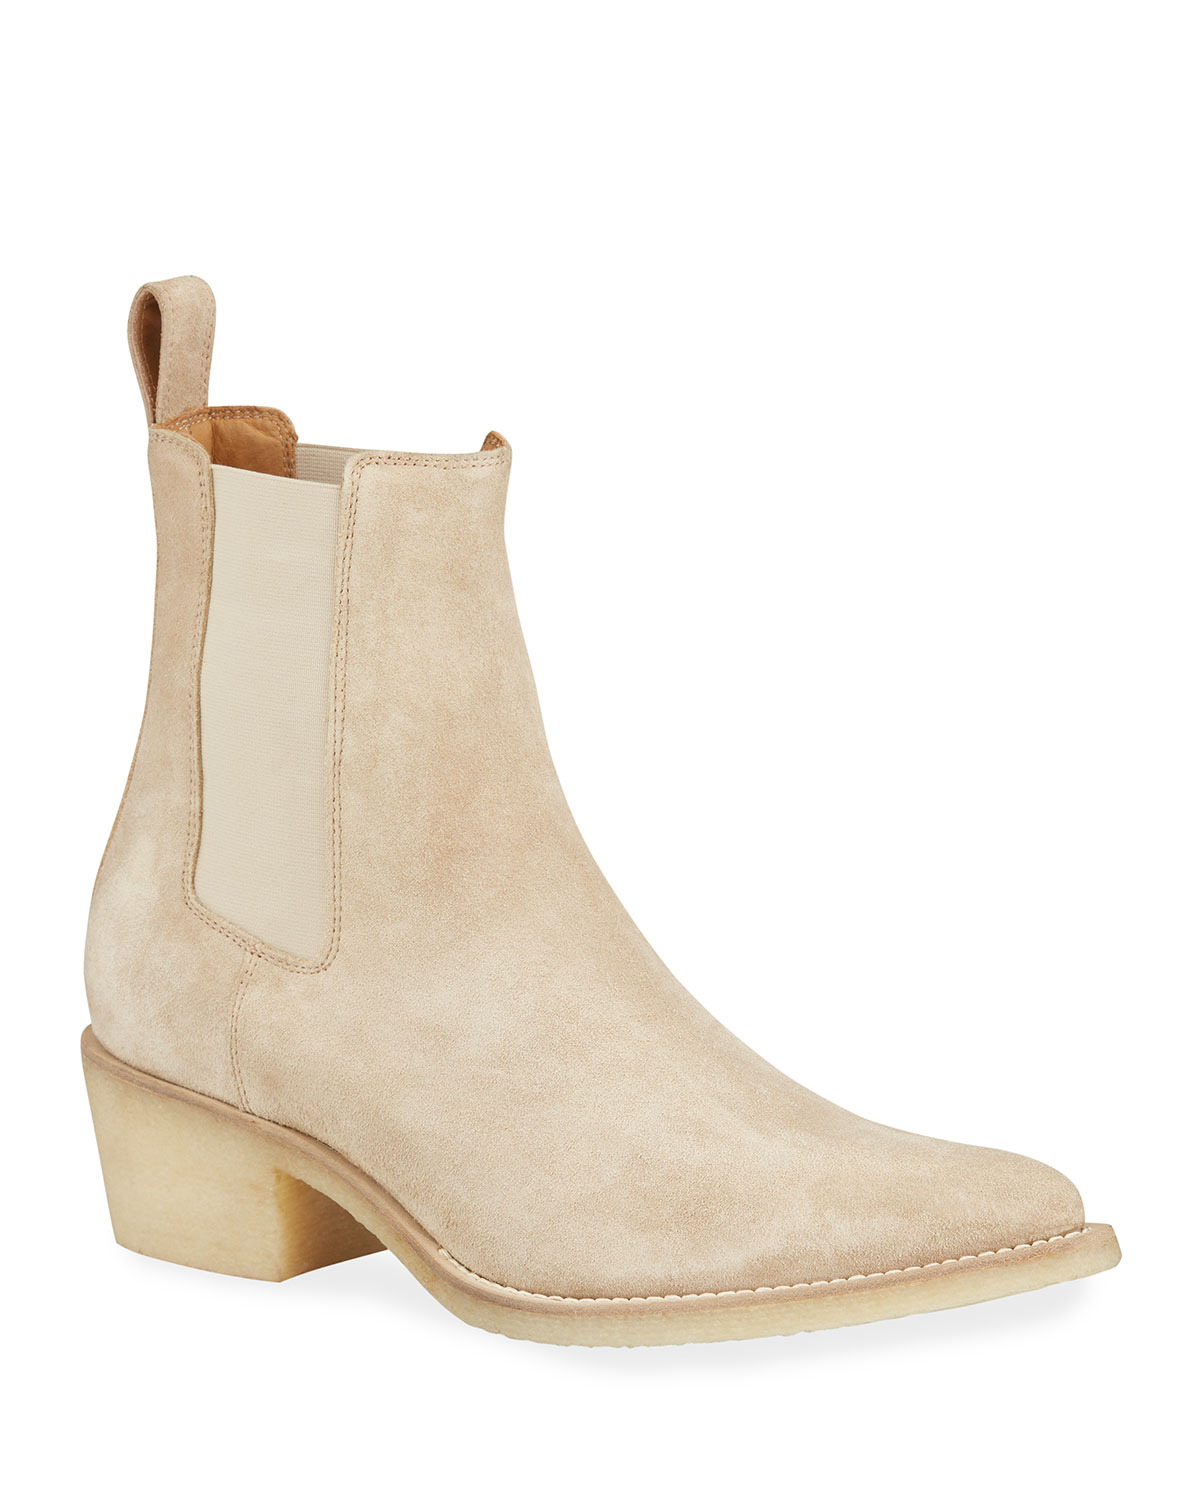 Amiri Men's Suede Point-Toe Chelsea Boots